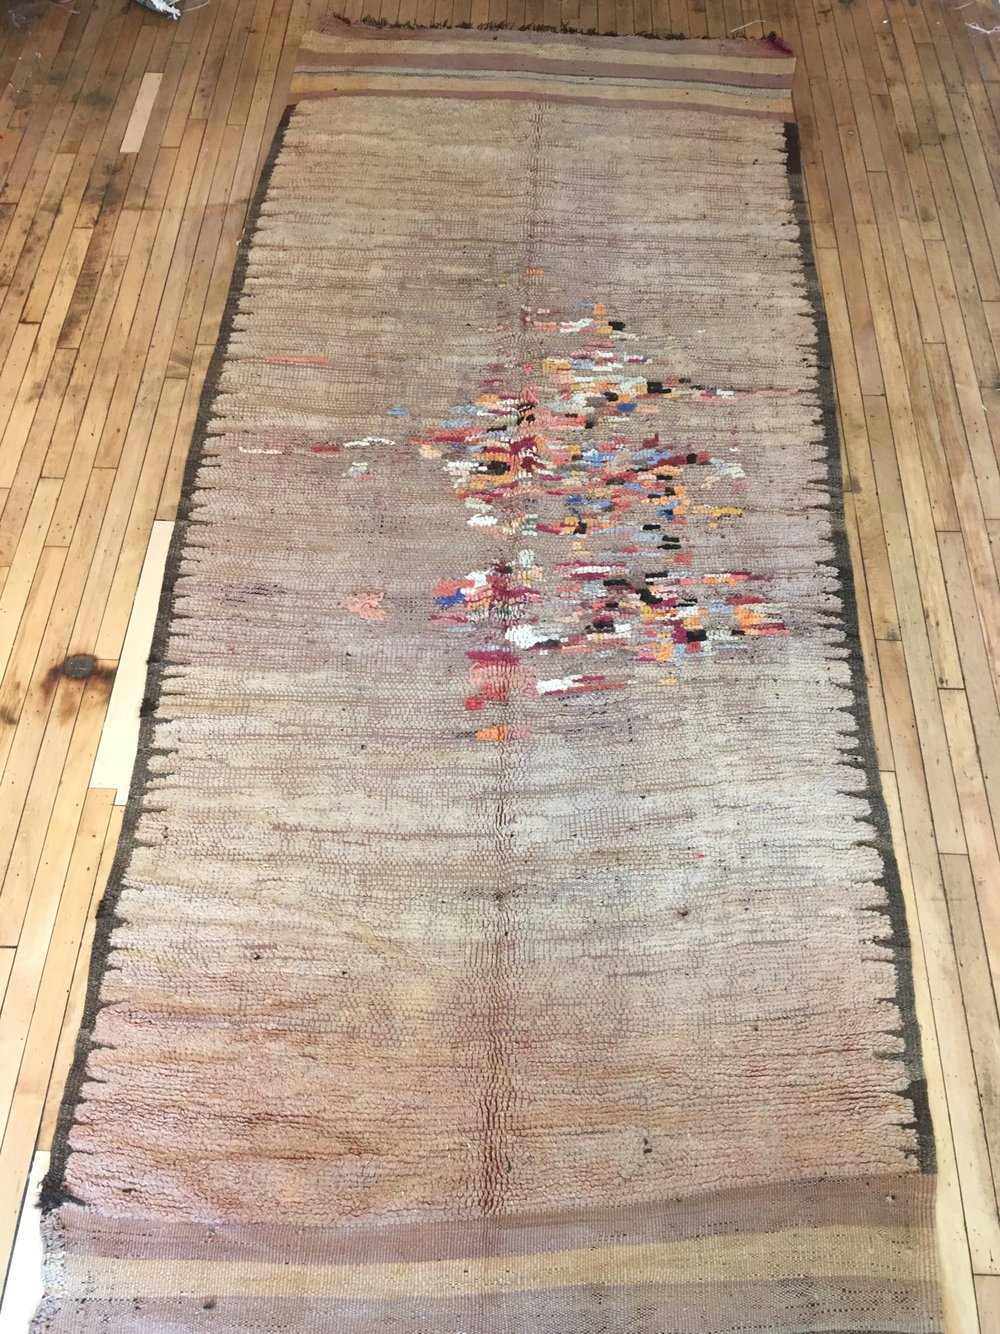 This is an antique, monochromatic Rehamna that has been repaired. It is an incredible, one-of-a-kind piece available at Mellah, our rug store in Toronto.